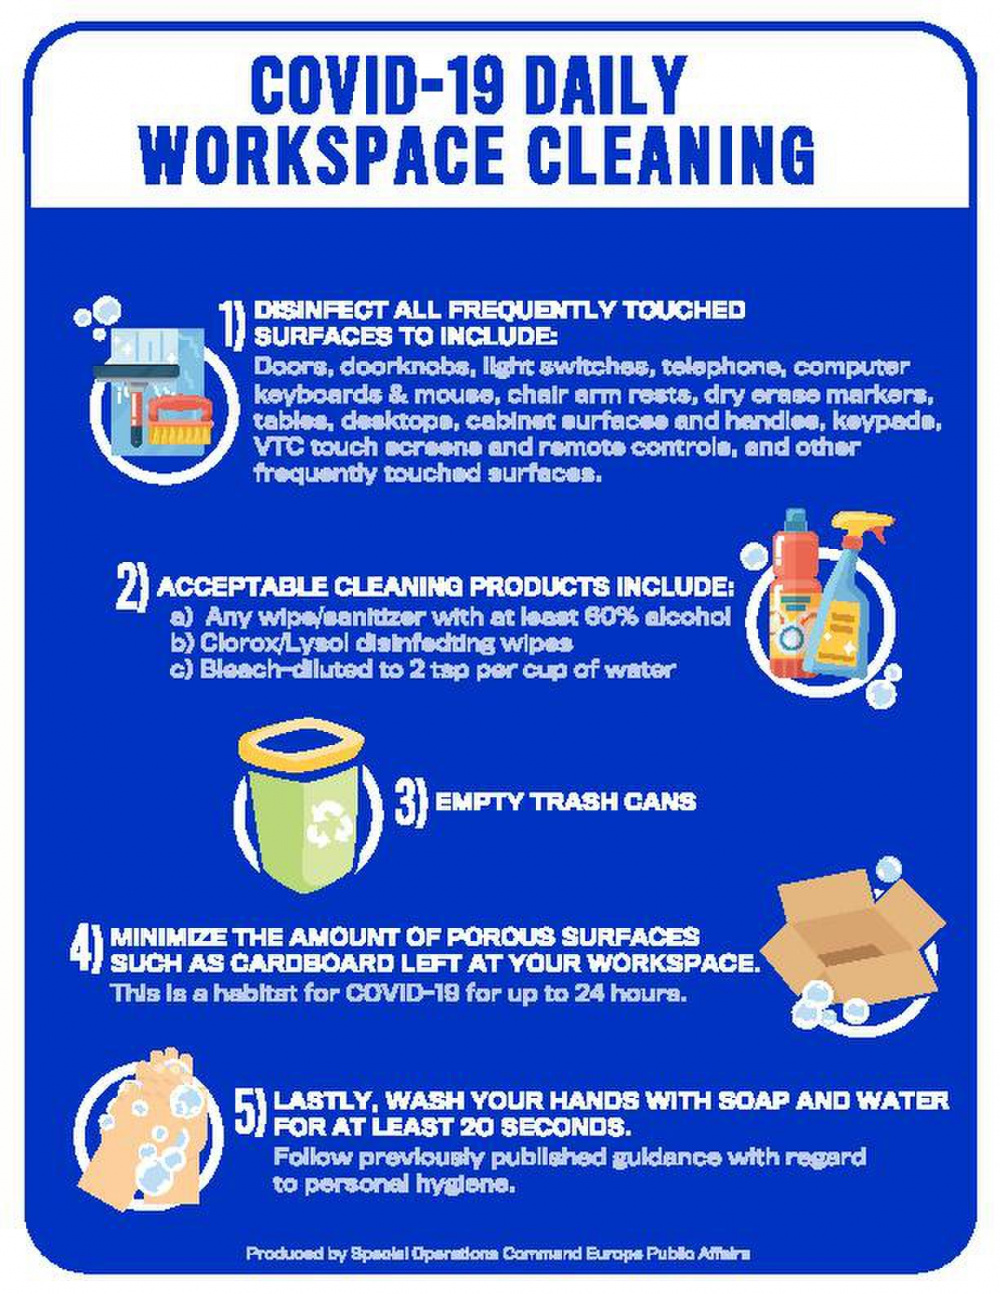 COVID-19 Daily Workspace Cleaning